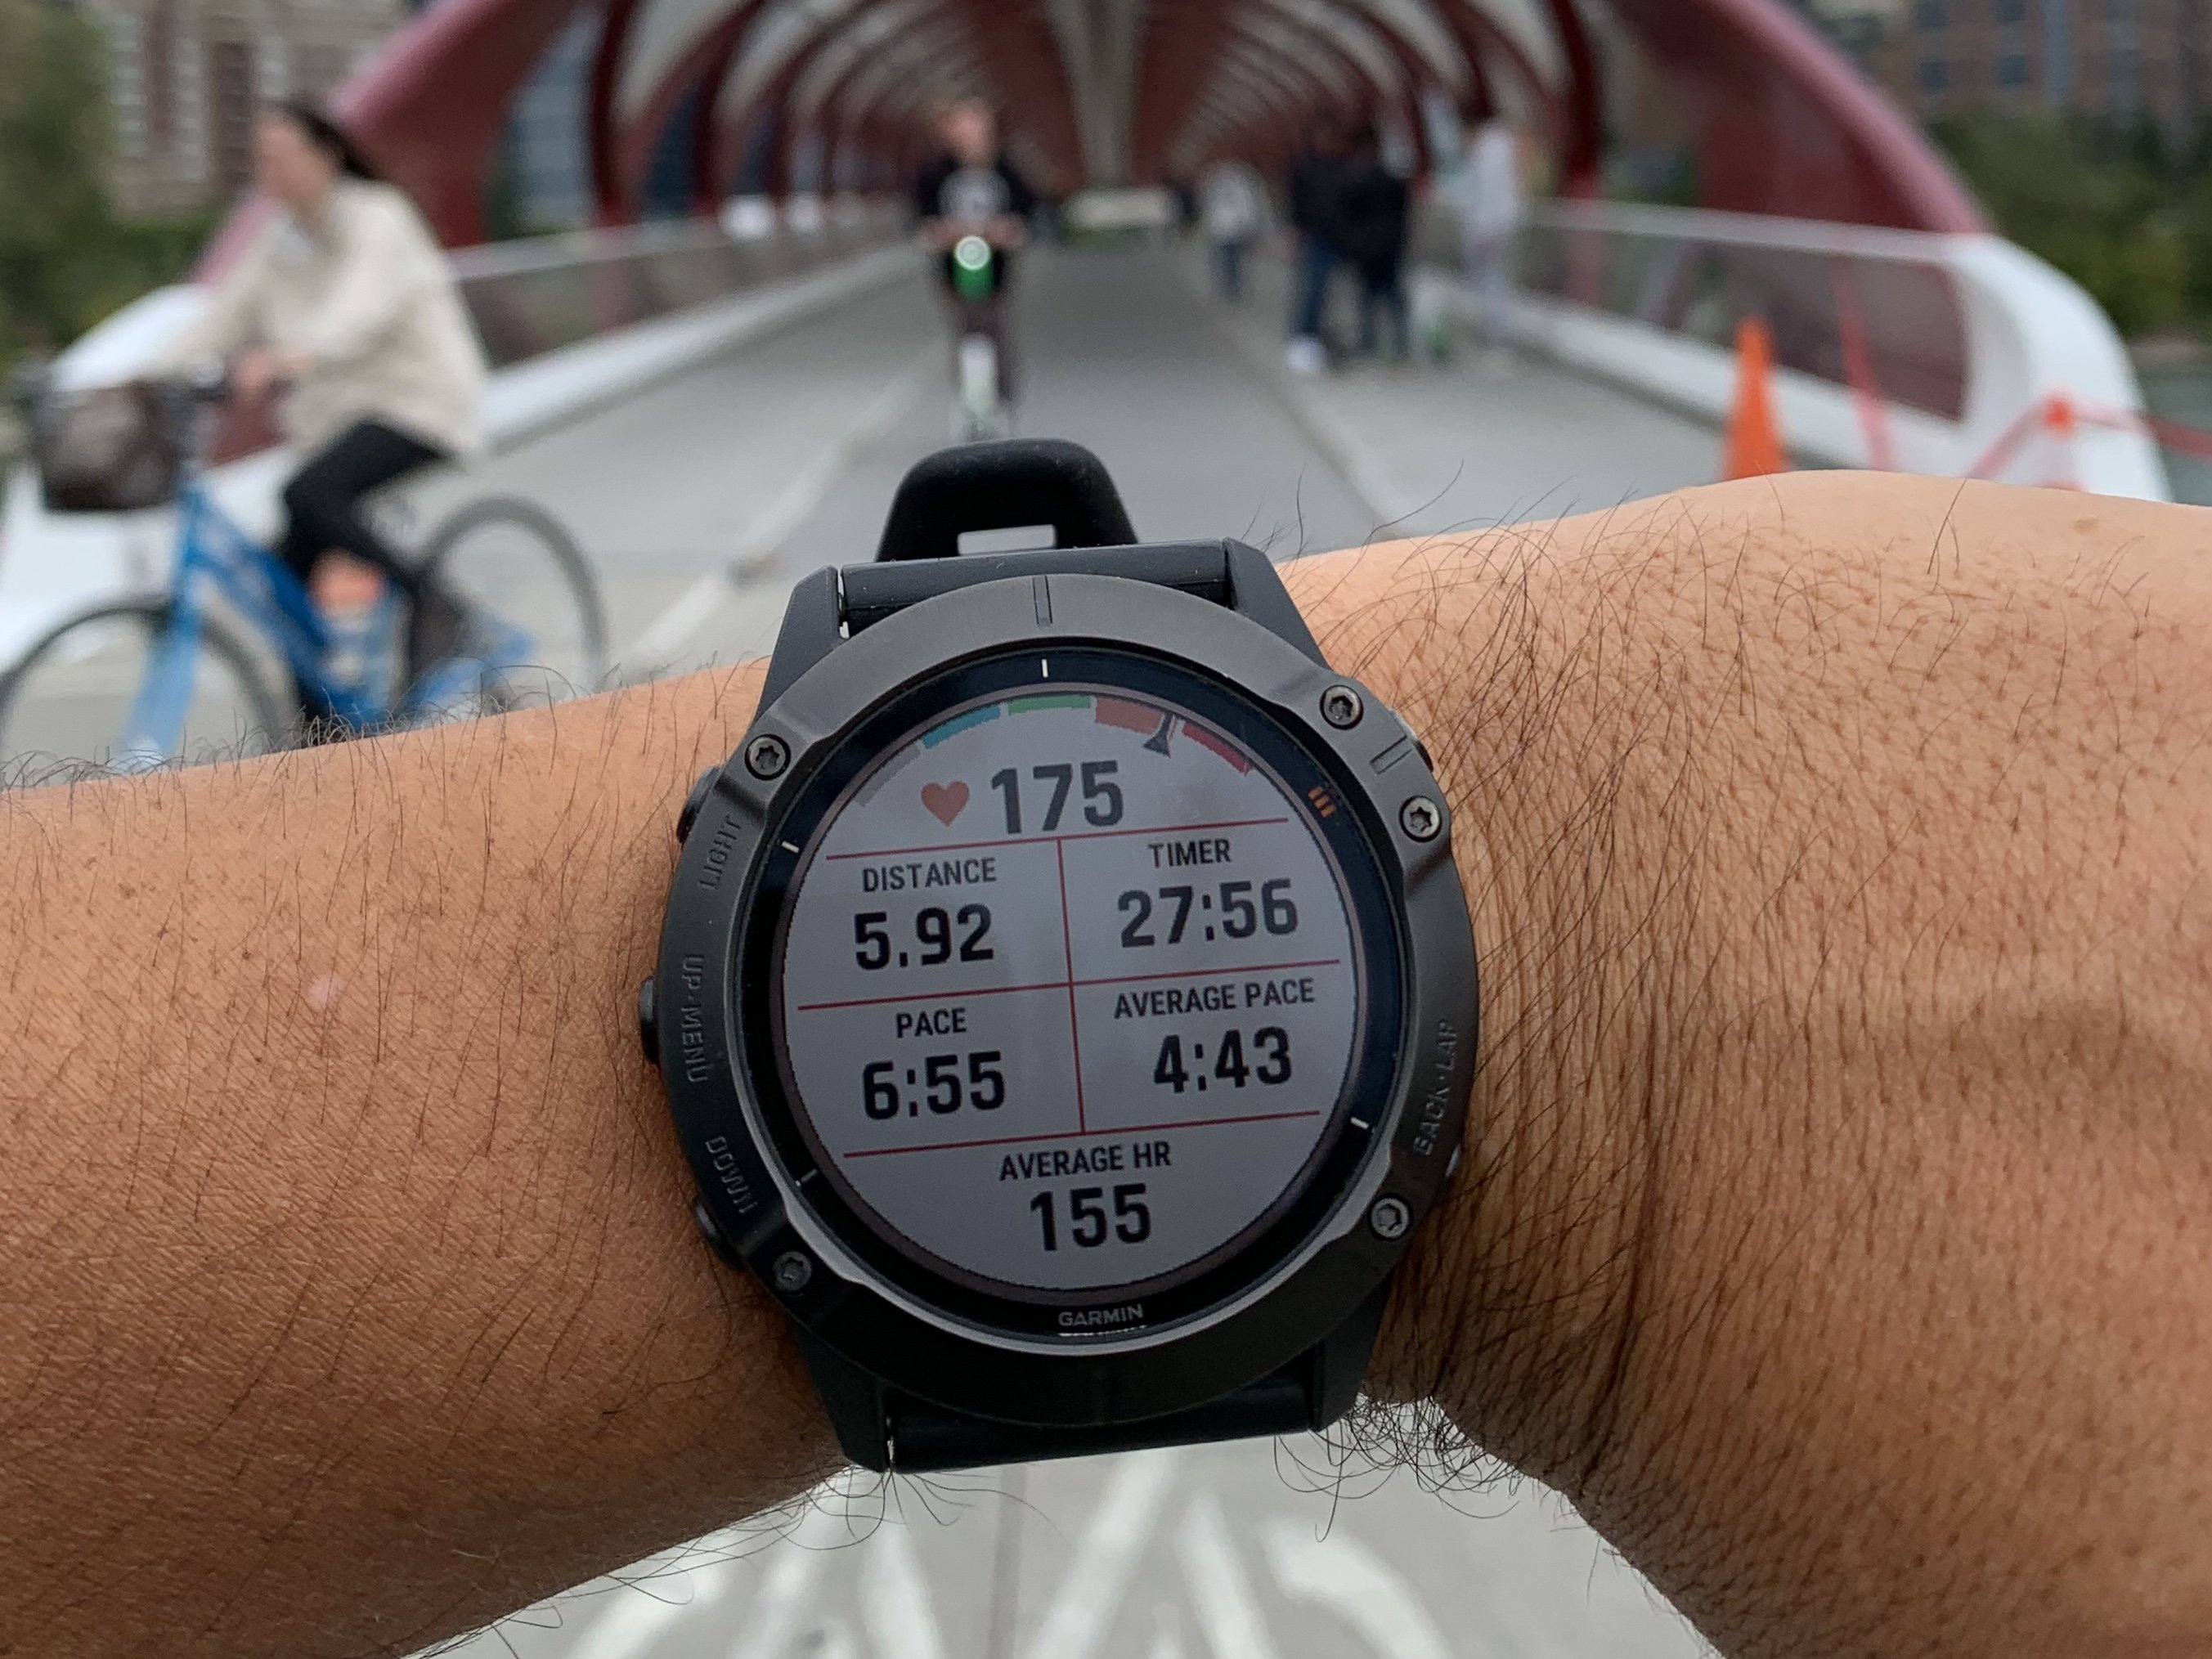 Apple Watch Series 5 versus Garmin fenix 6